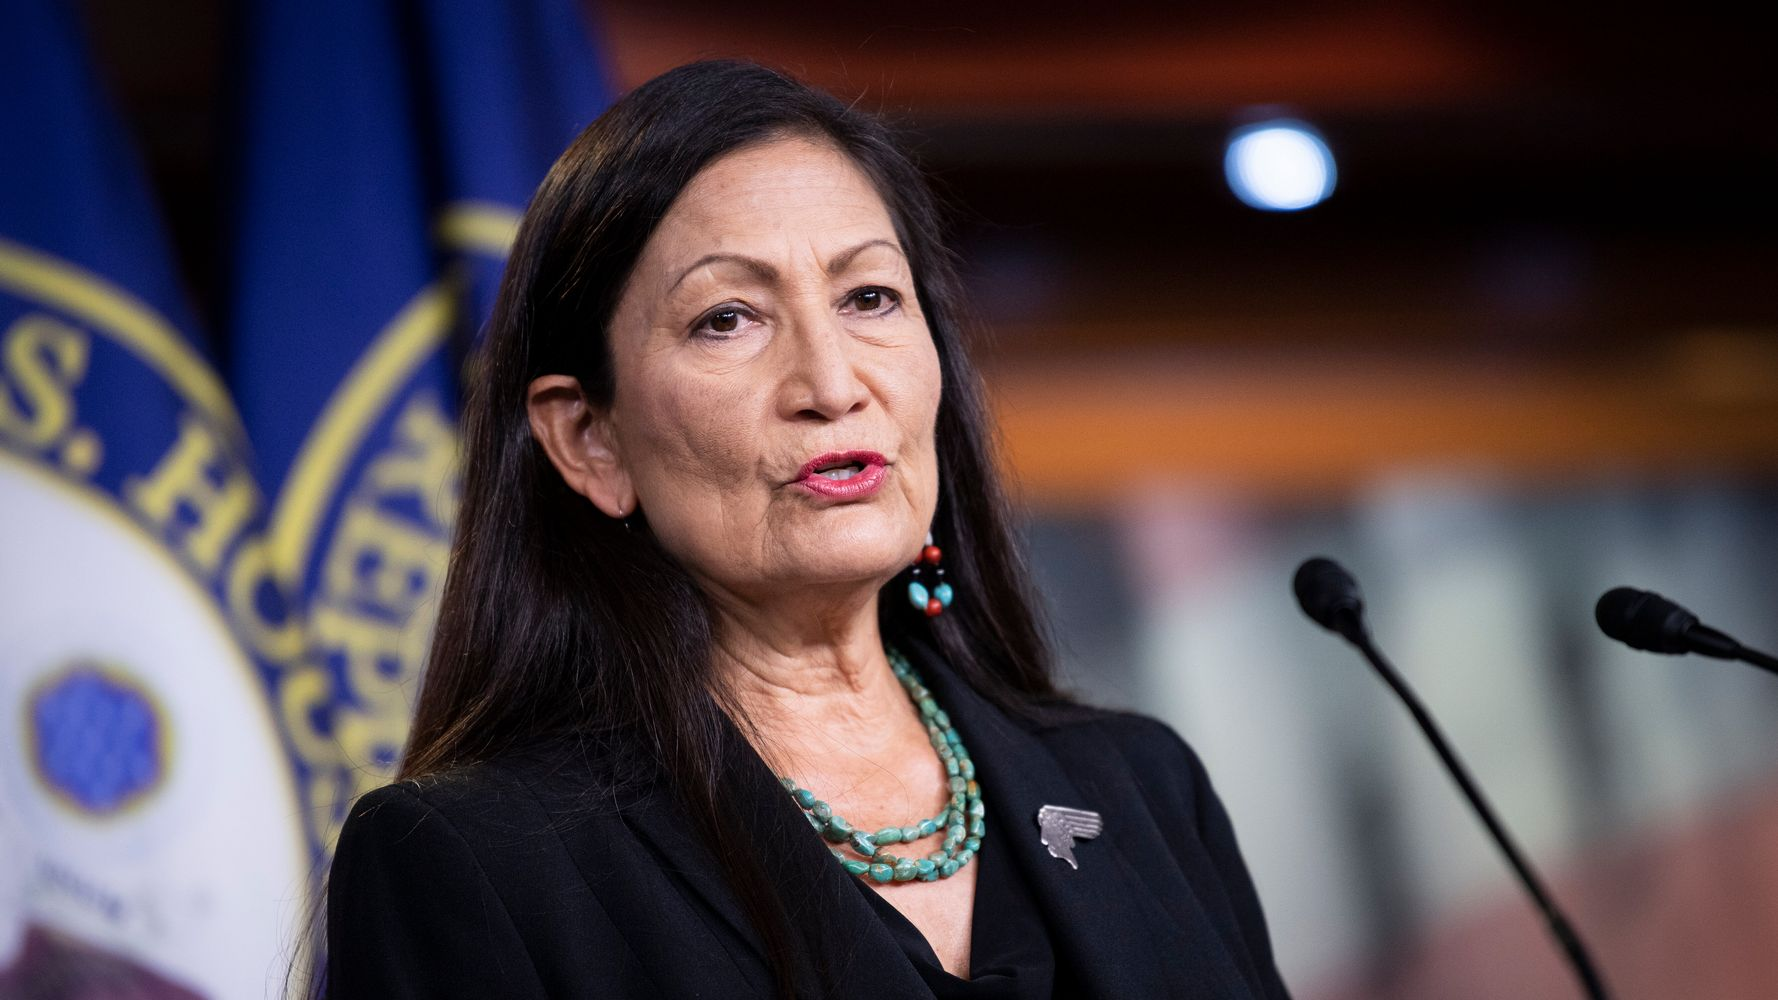 Dozens Of Lawmakers Urge Biden To Pick Deb Haaland For Interior Secretary